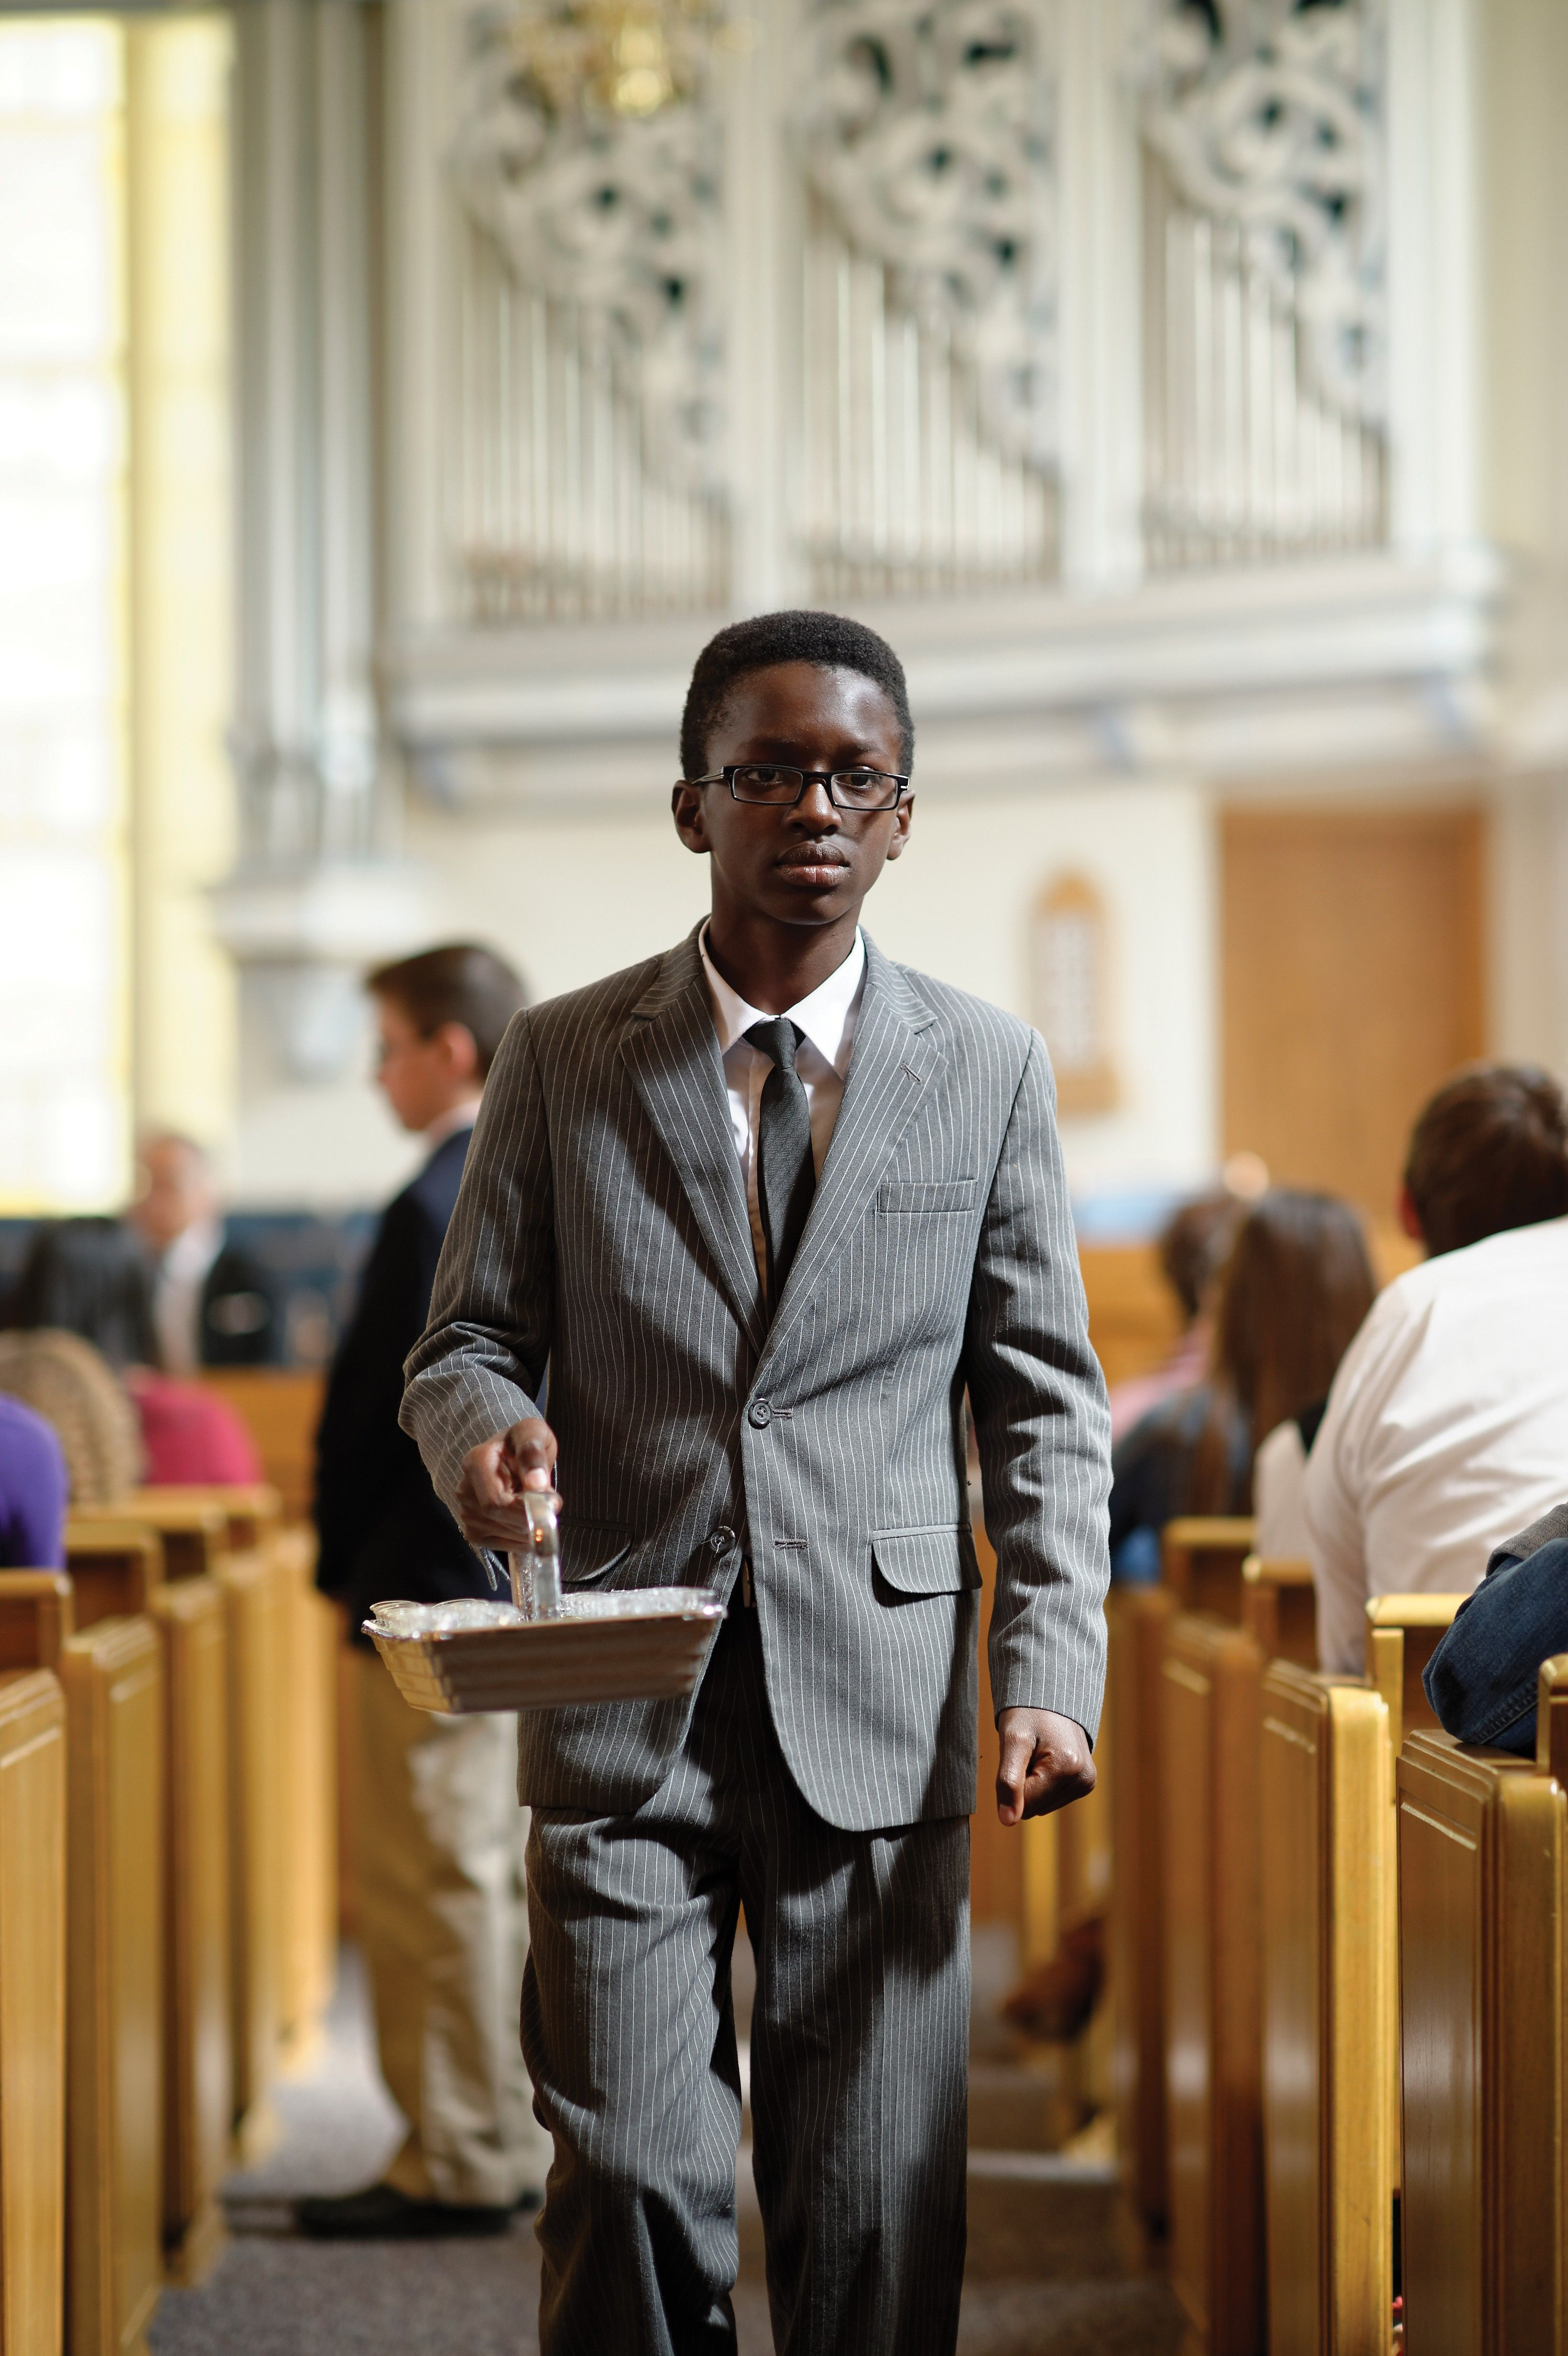 A deacons passing the sacrament to members of the congregation.